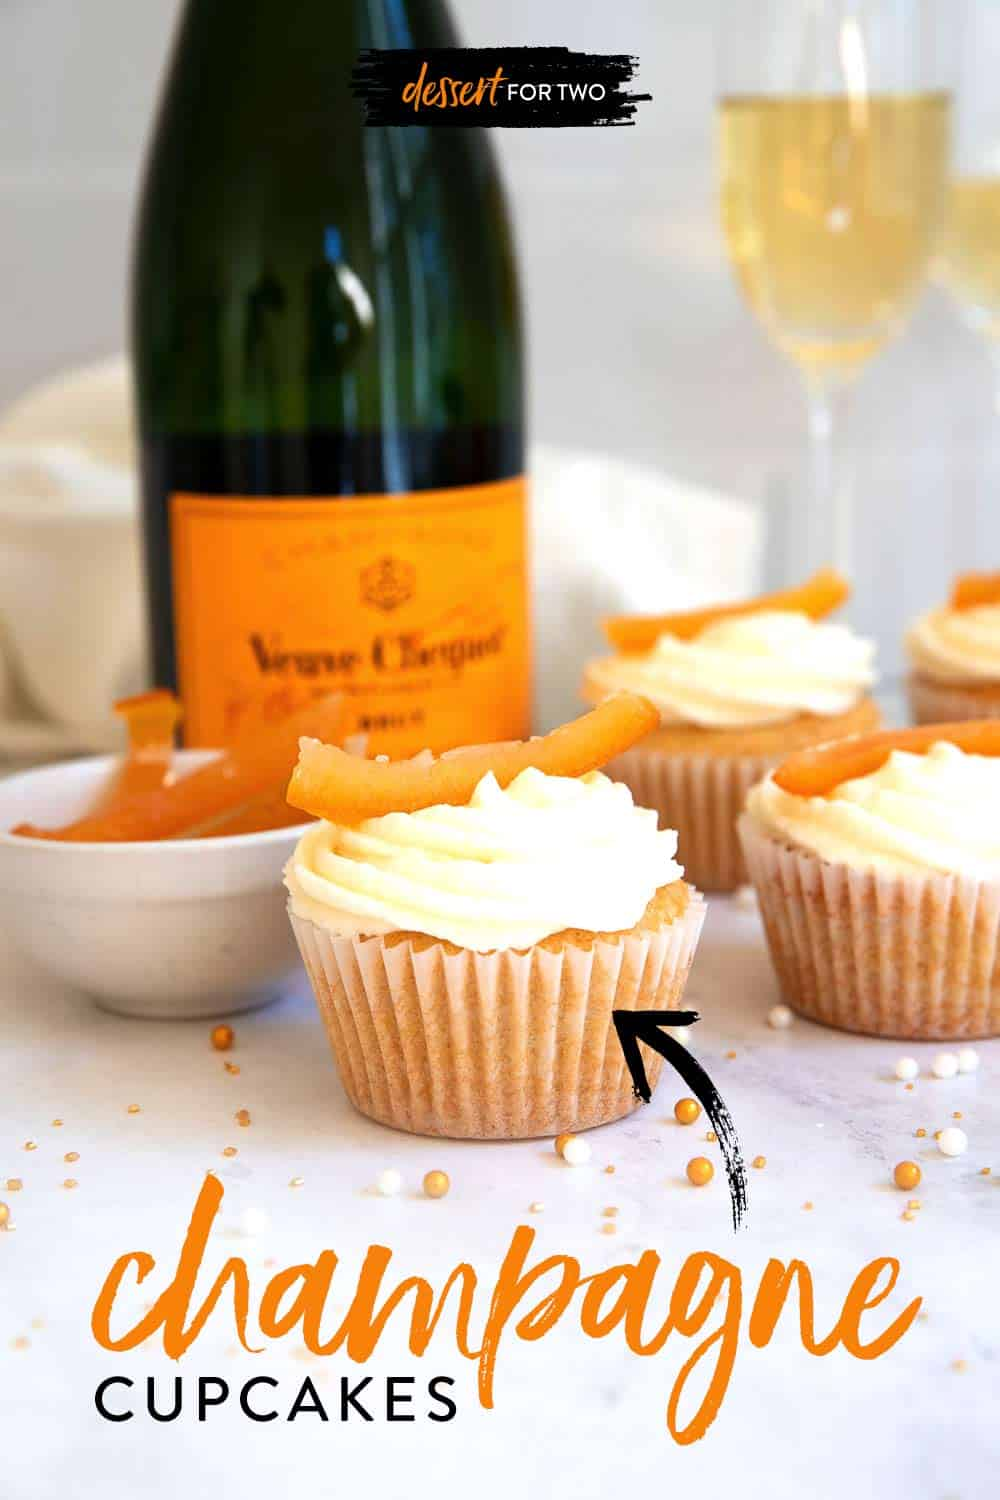 Close up of champagne cupcakes with sprinkles and champagne bottle in background.